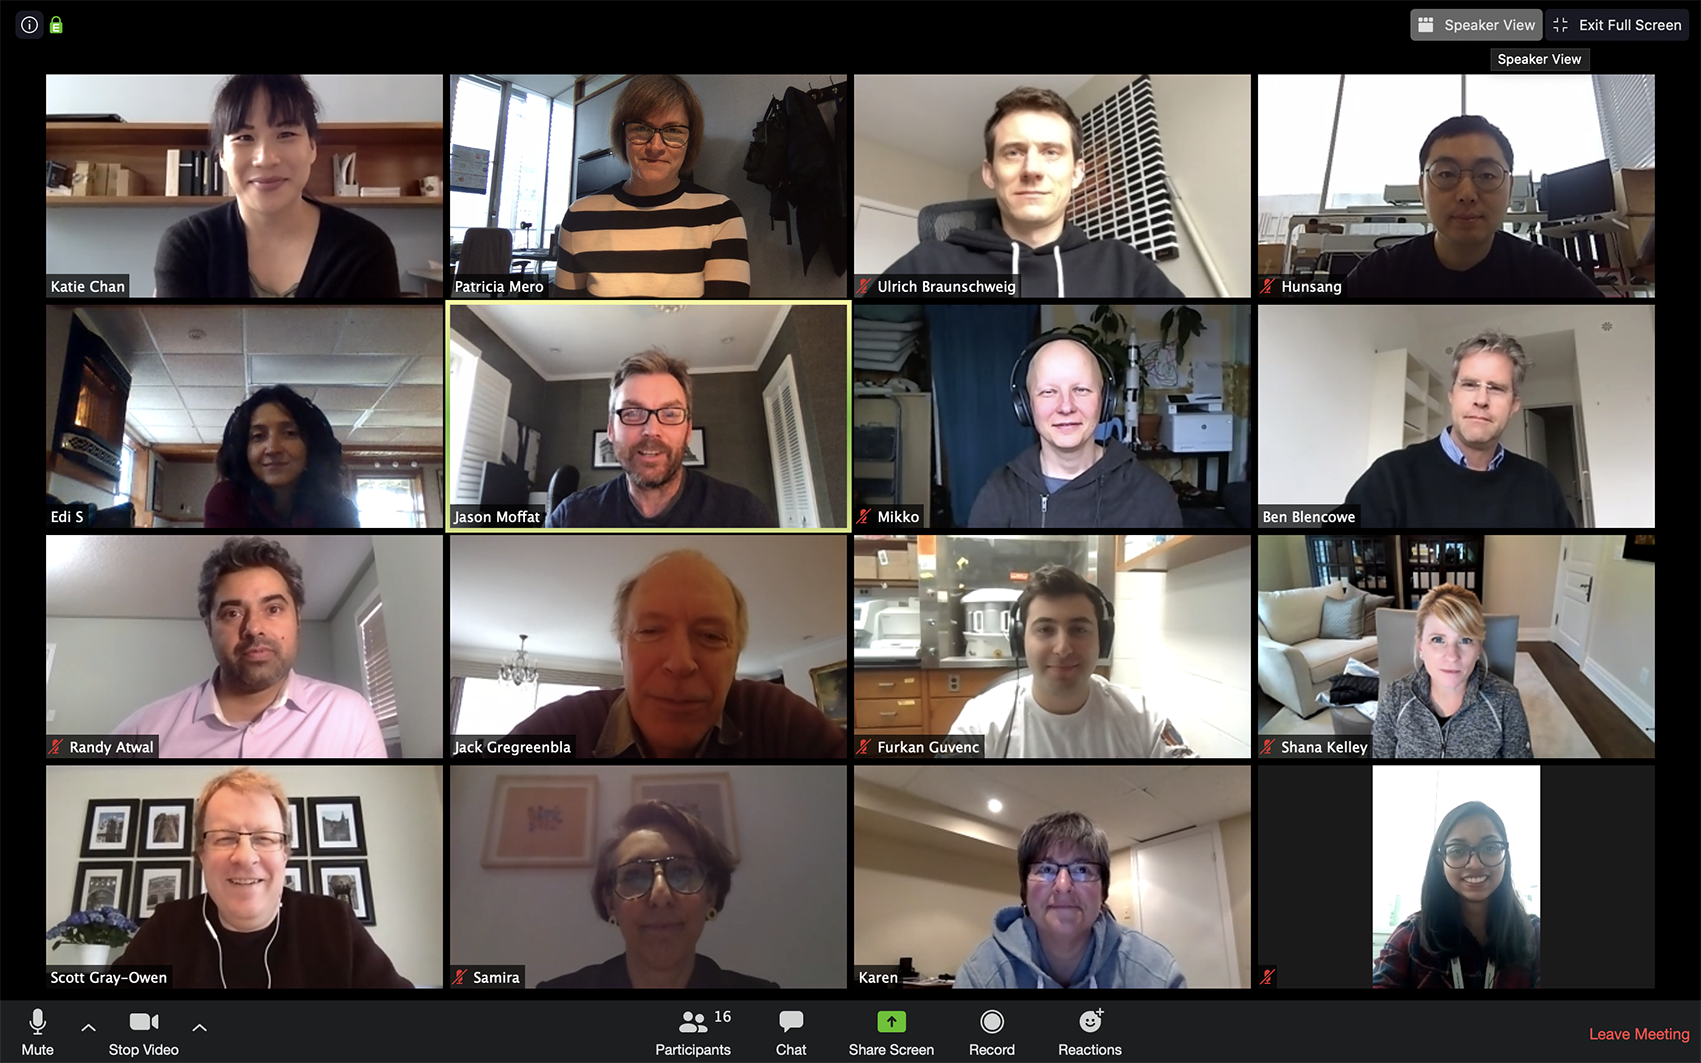 Screen shot of researchers on video call